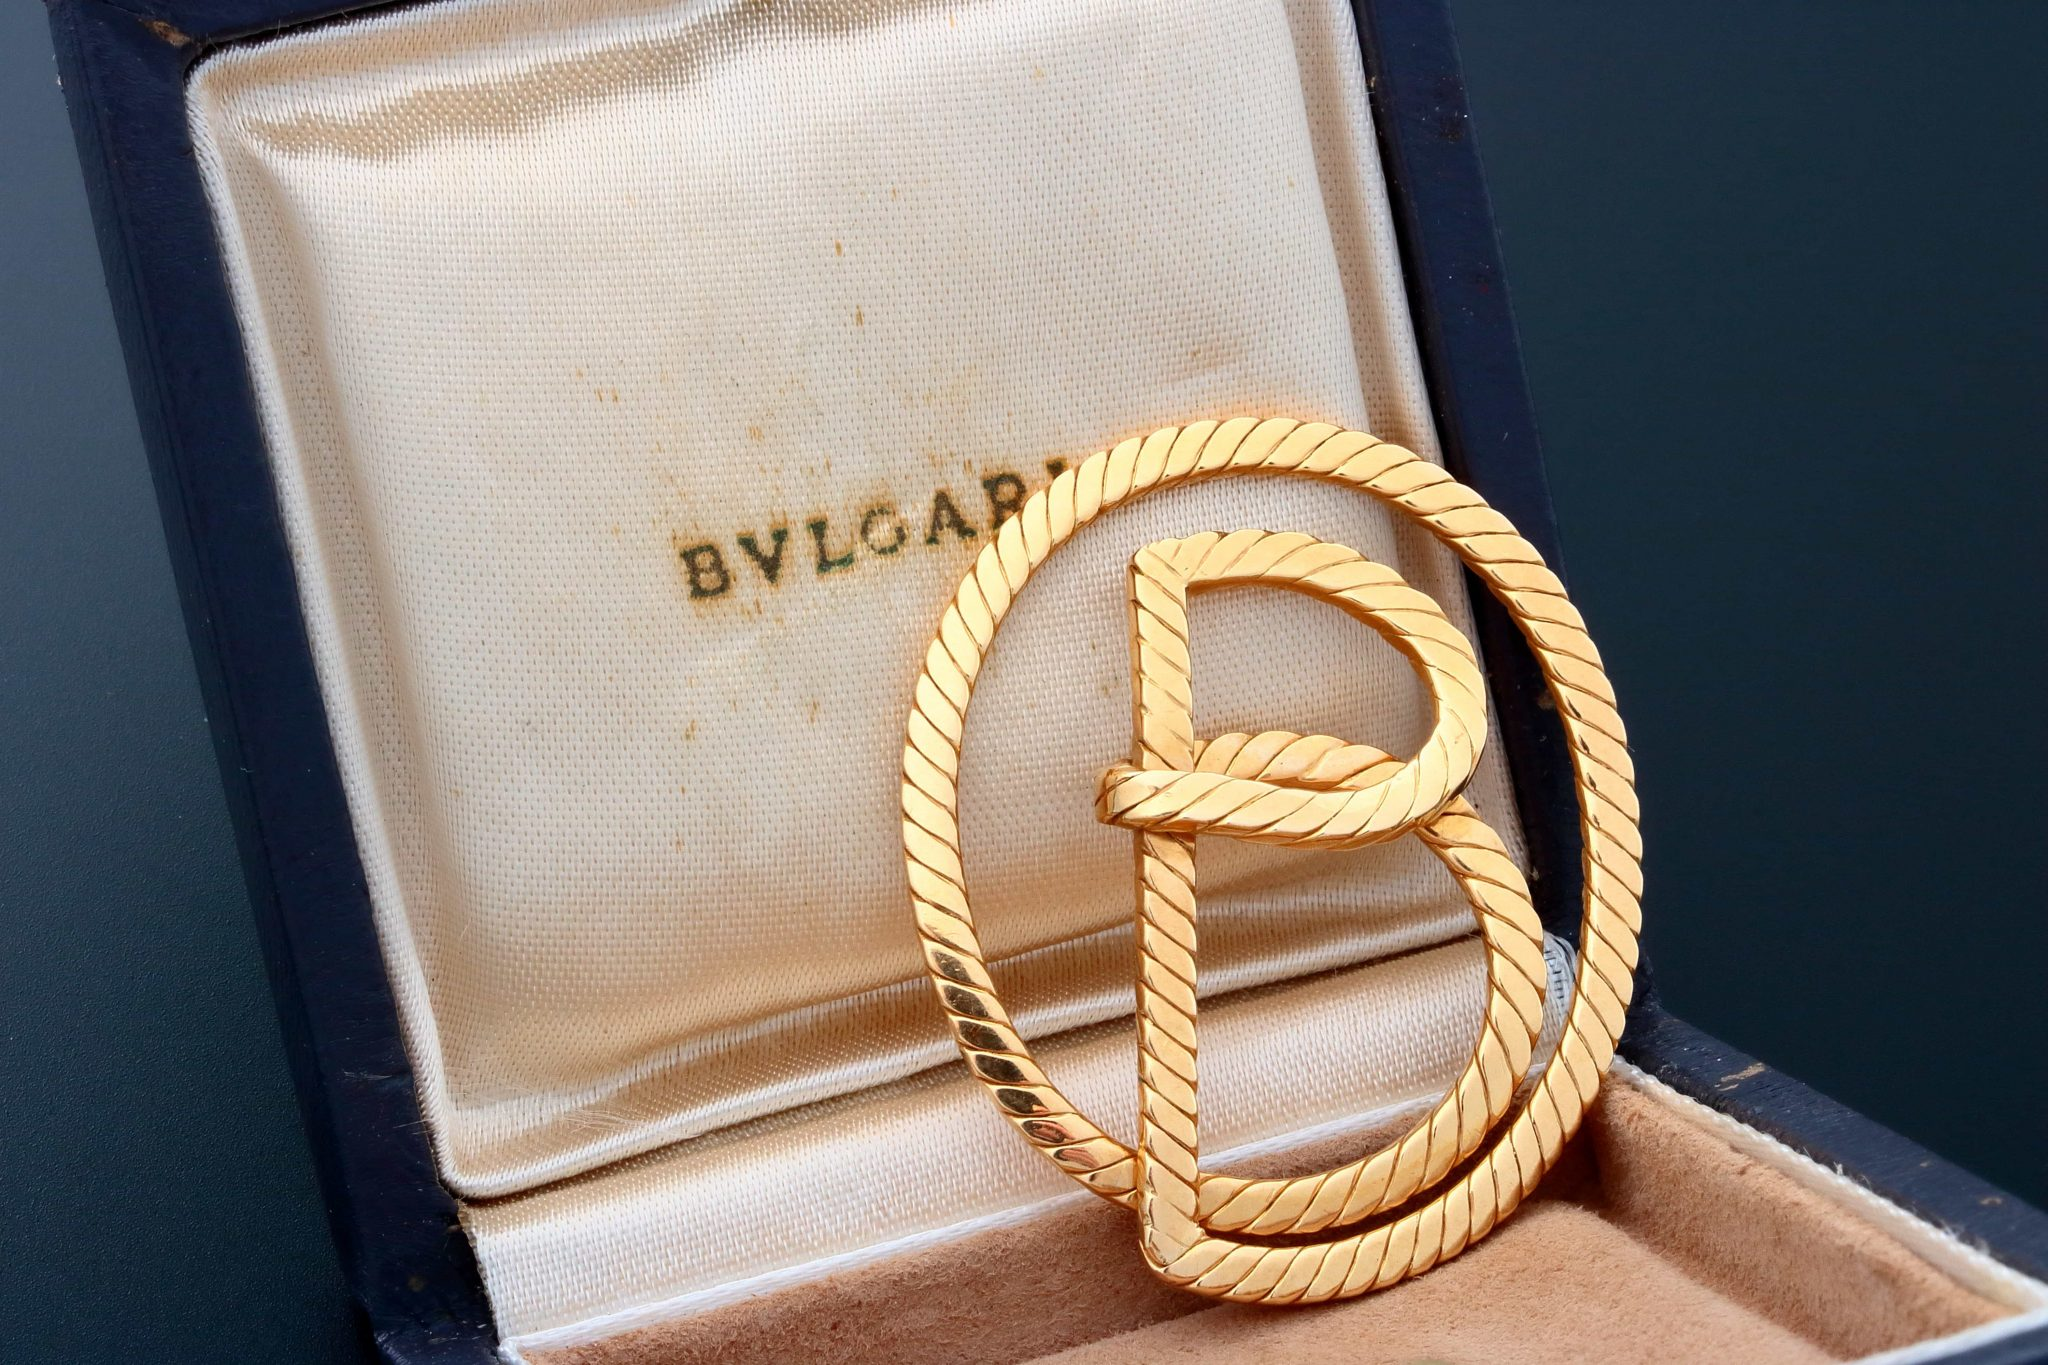 Bvlgari 18k Yellow Gold Money Clip – Baer & Bosch Auctioneers